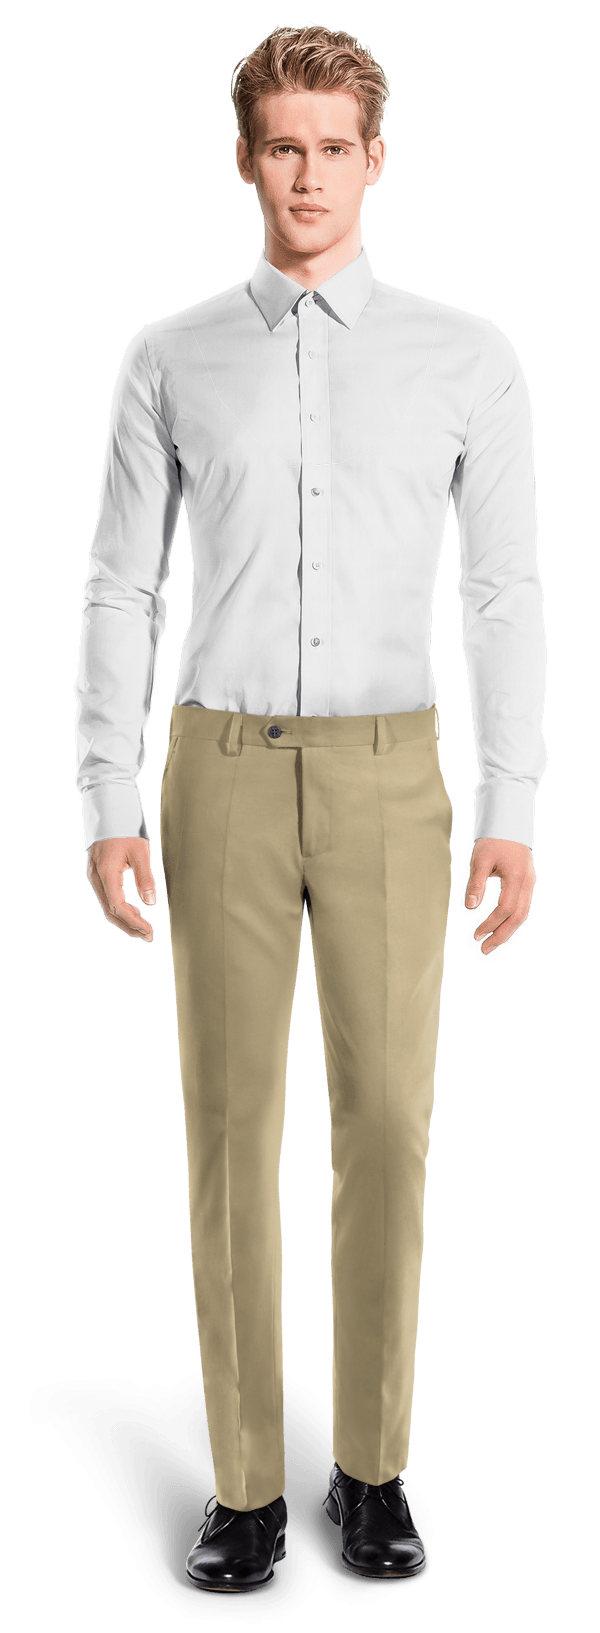 Chino marron de corte slim